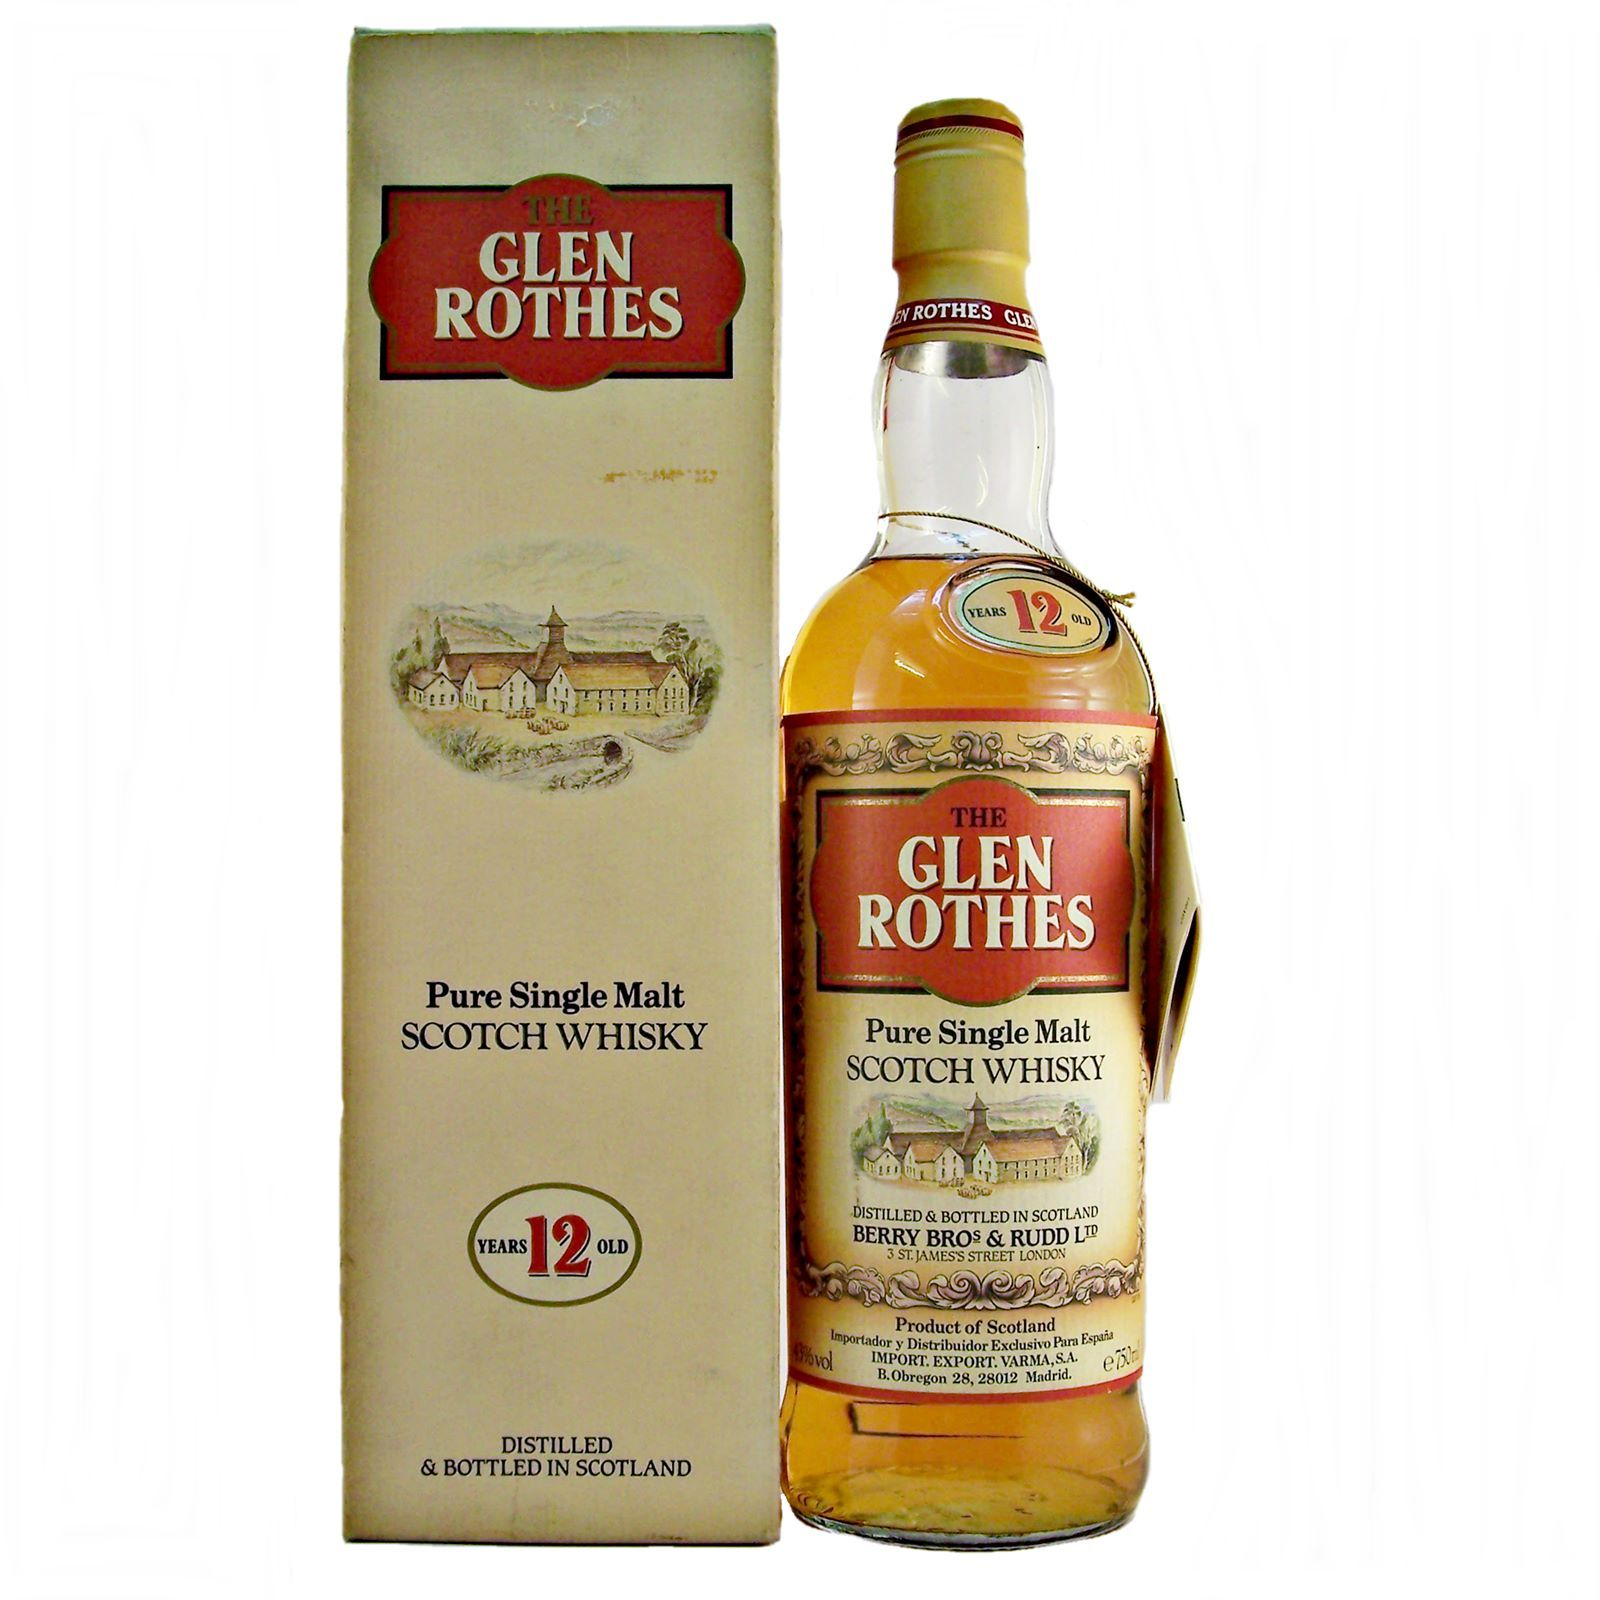 Glenrothes Single Malt Whisky 12 year old 1980s Disconinued bottling by Berry Brothers 7 Rudd limited available at whiskys.co.uk